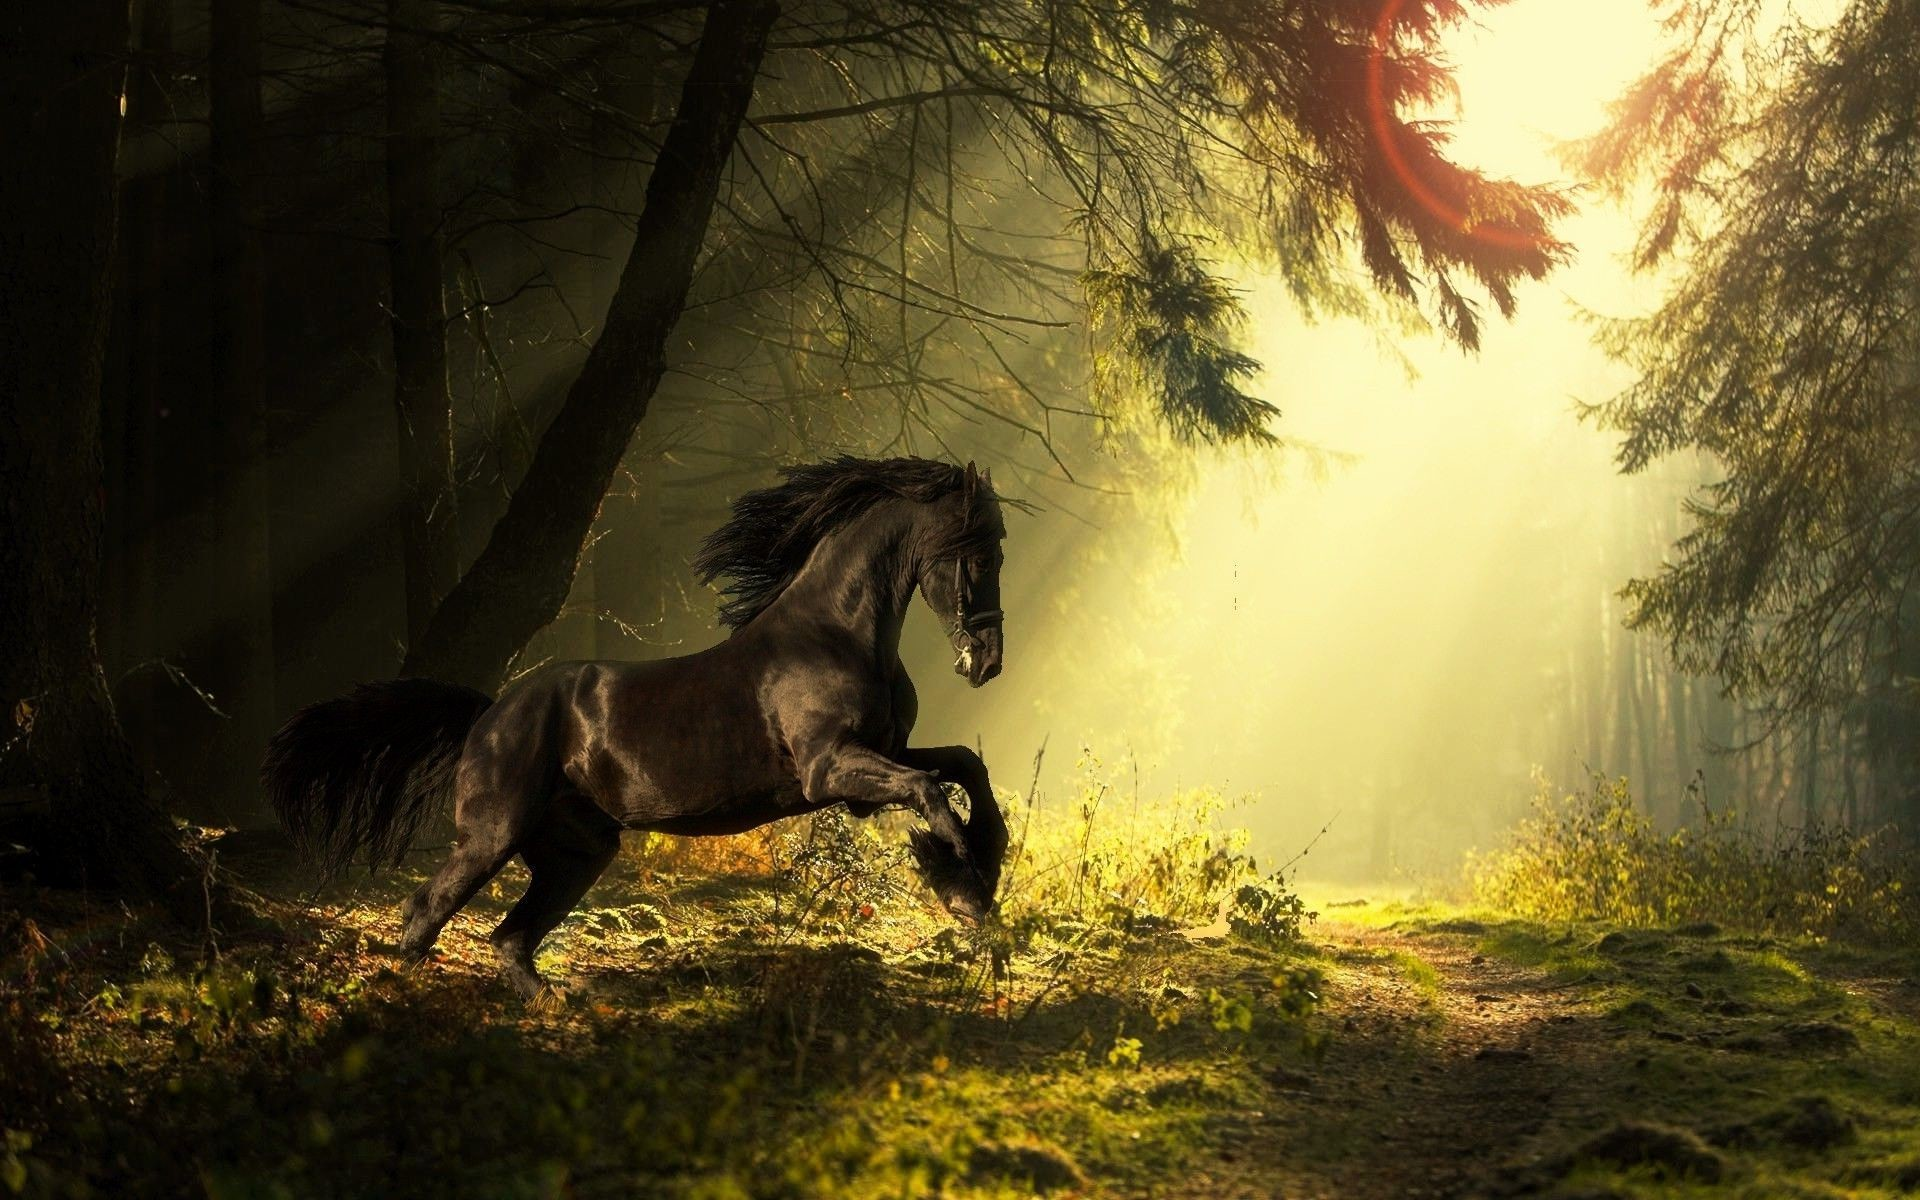 1920x1200 0 Horse Wallpapers Image Horse Wallpapers PC Desktop Full HD Pictures